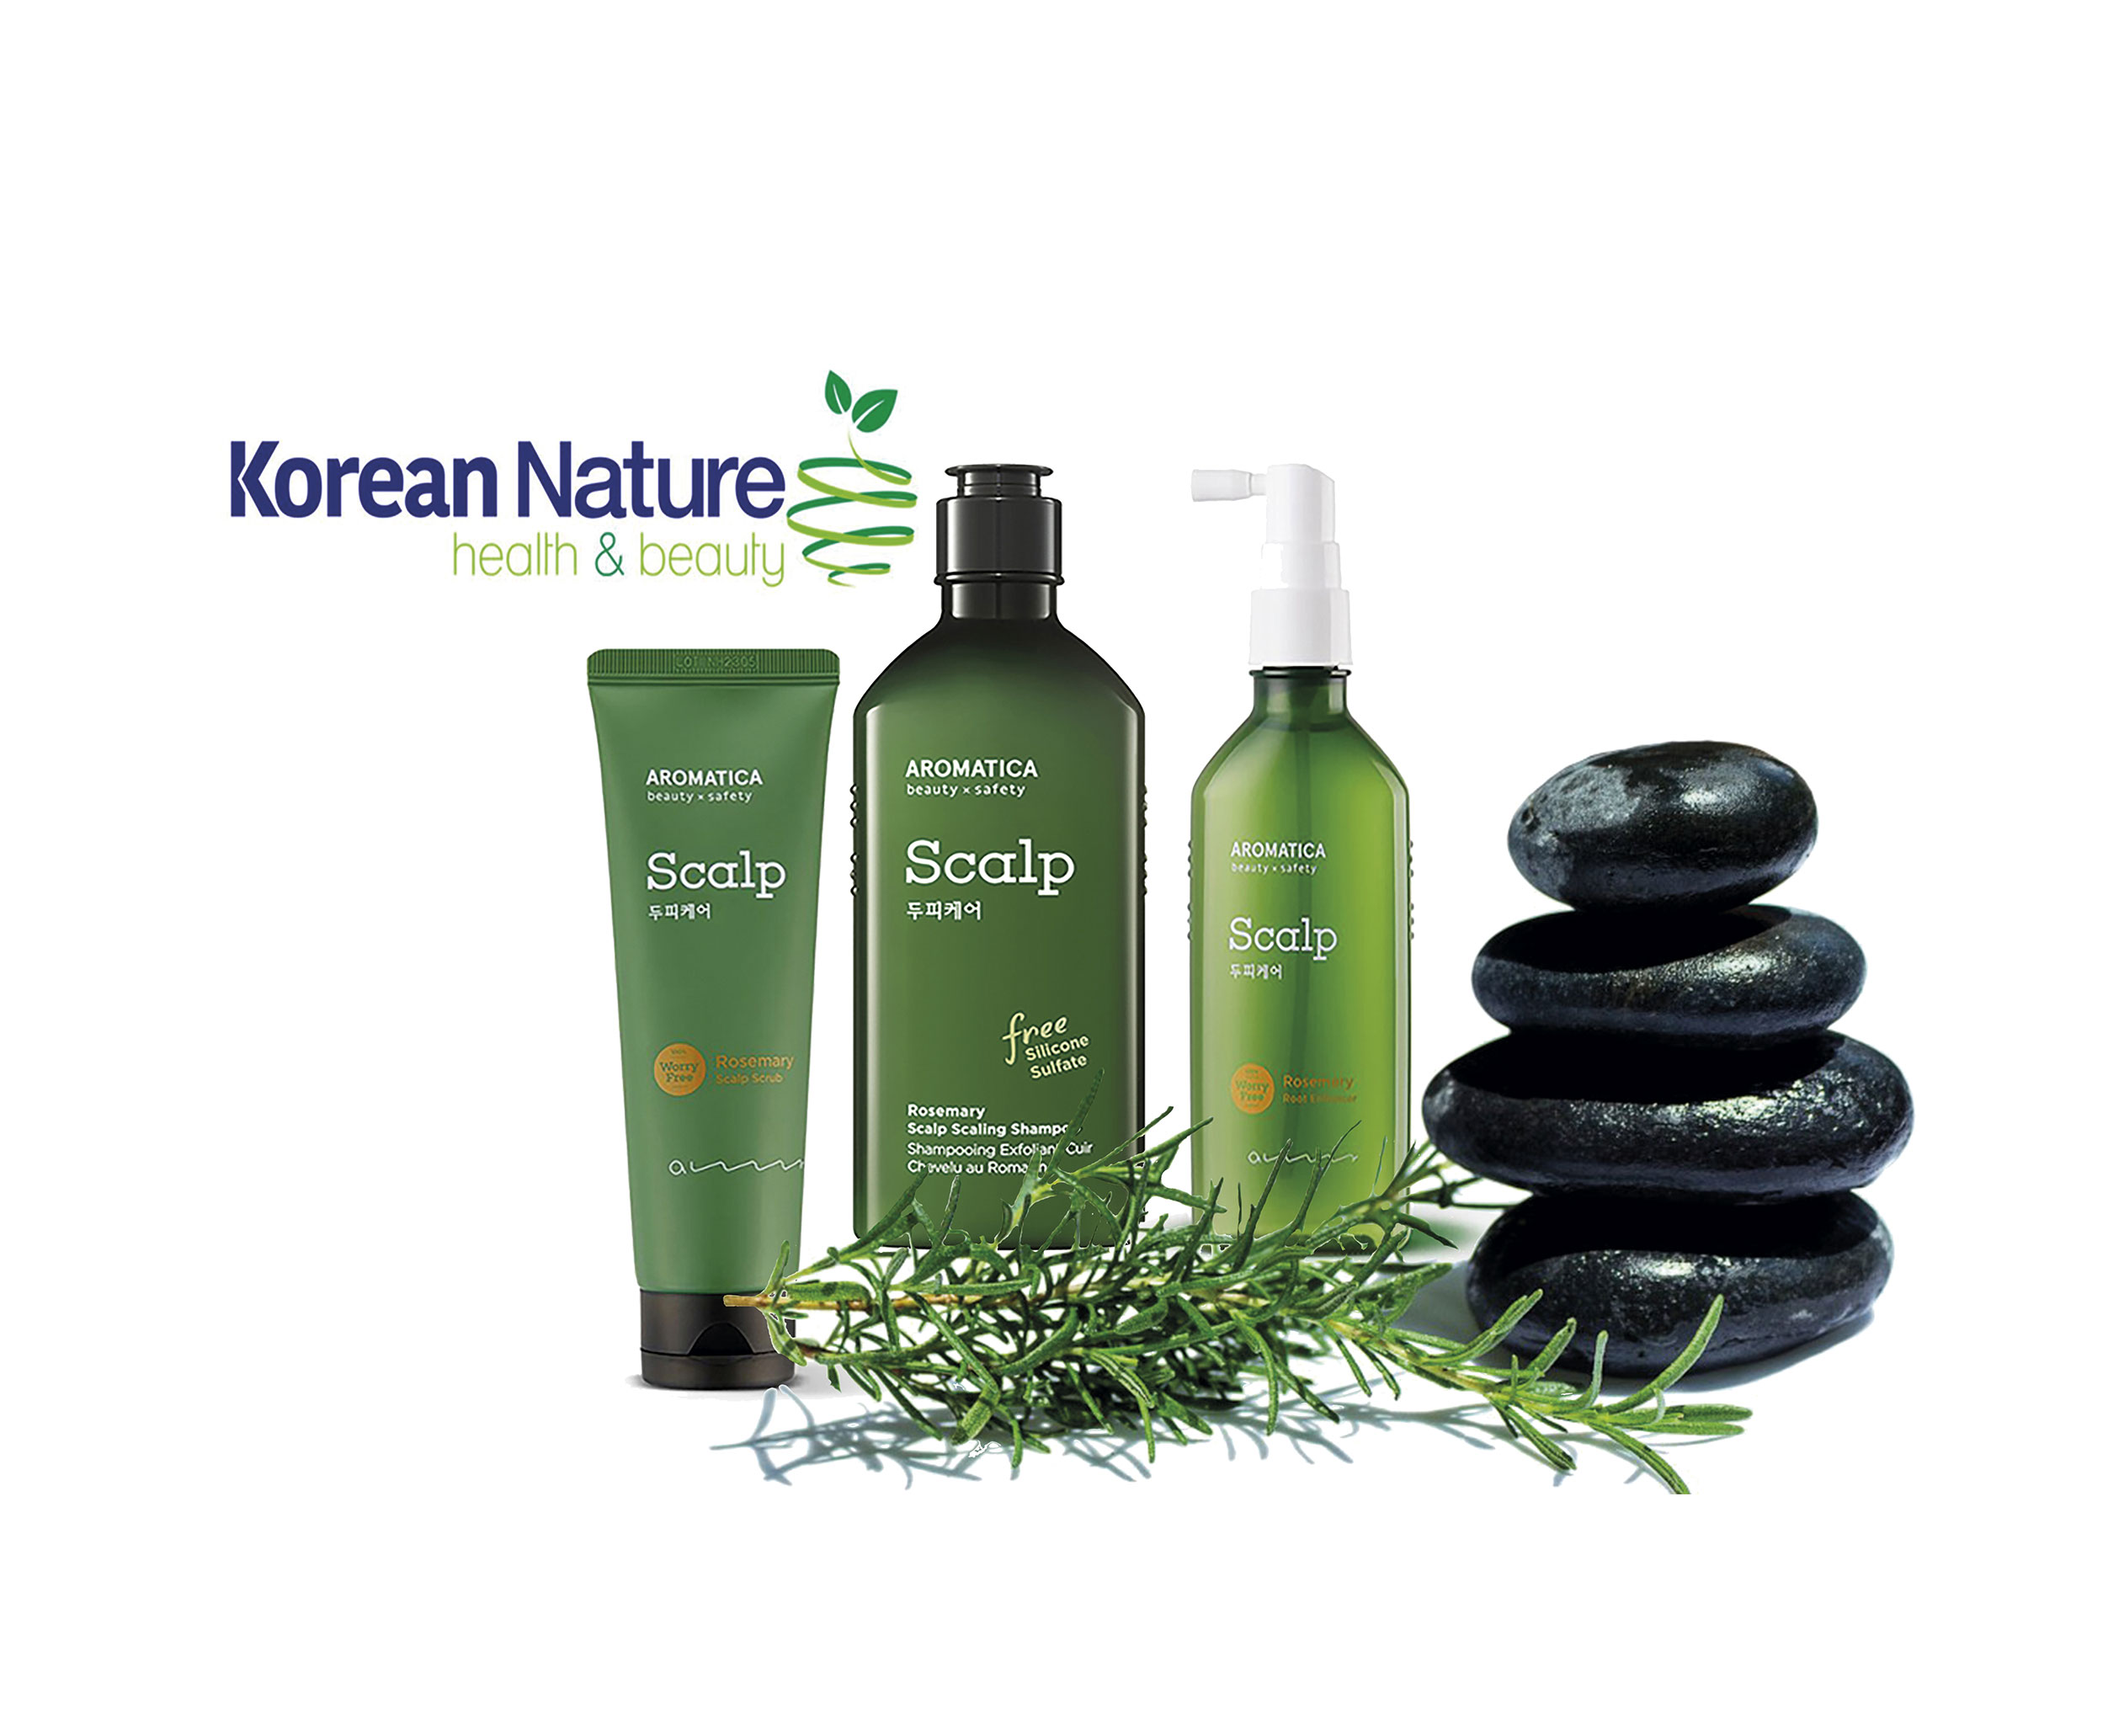 Korean Nature